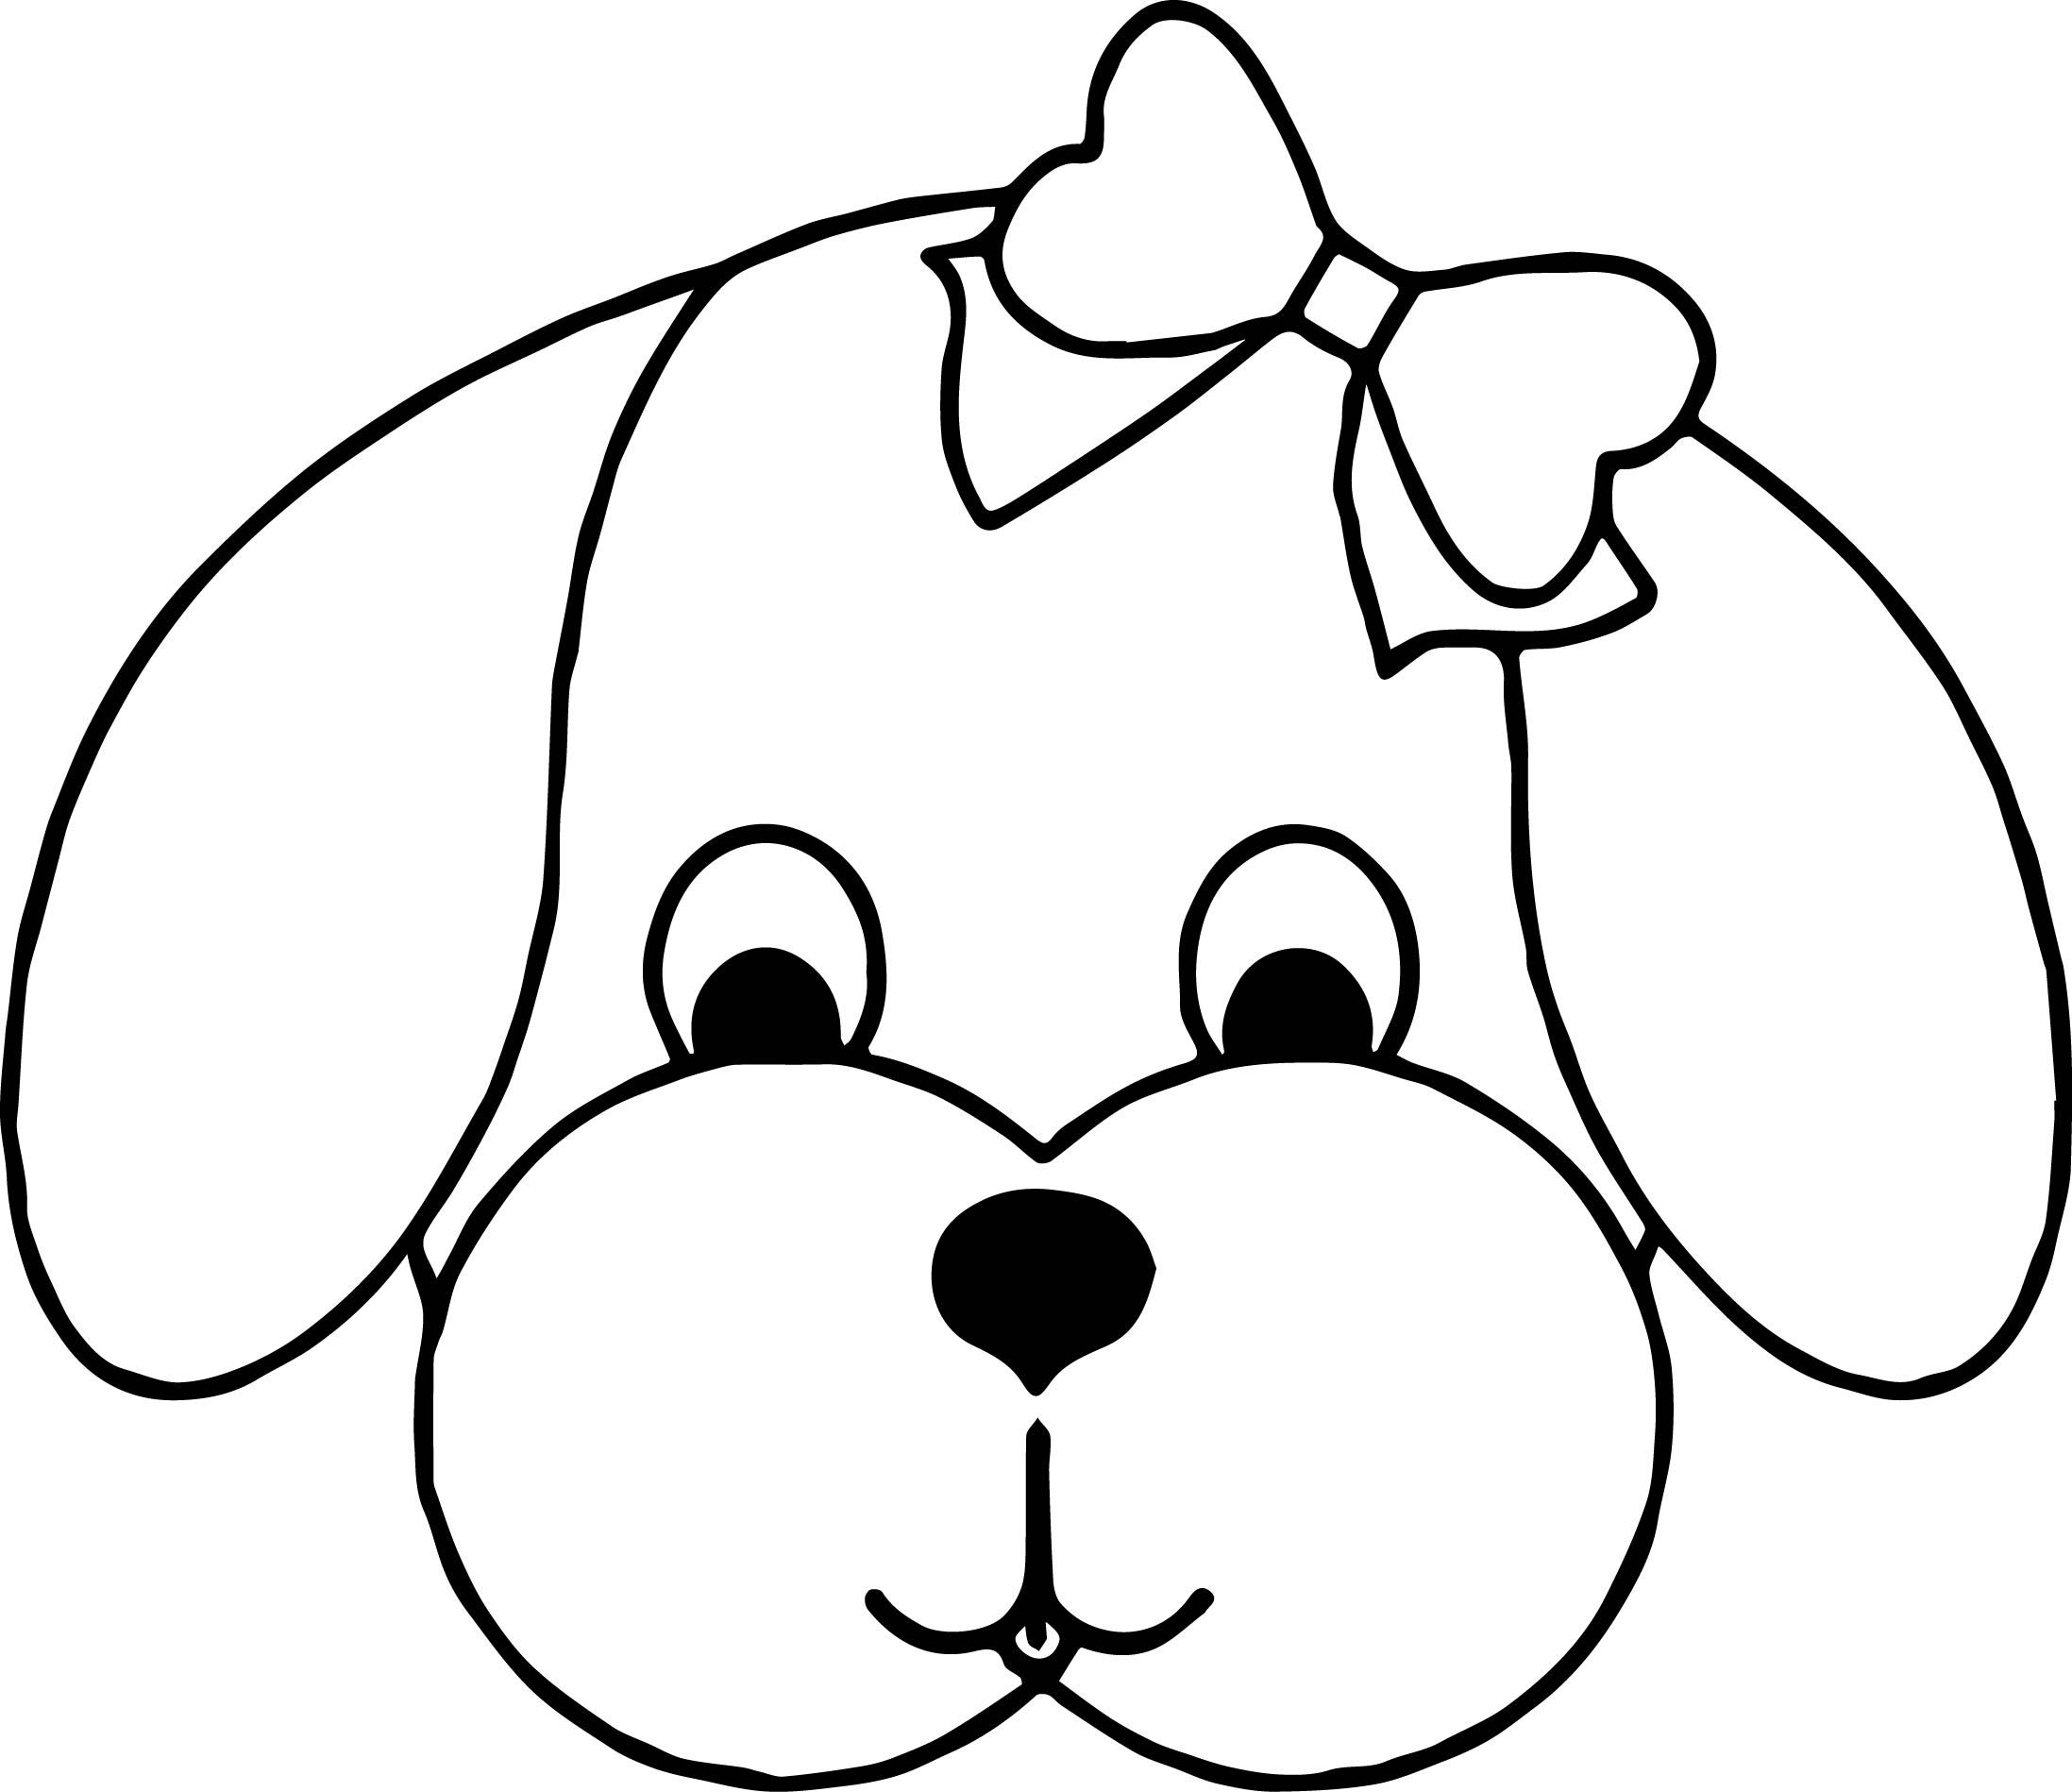 Dog Coloring Pages Wecoloringpage With Images Dog Coloring